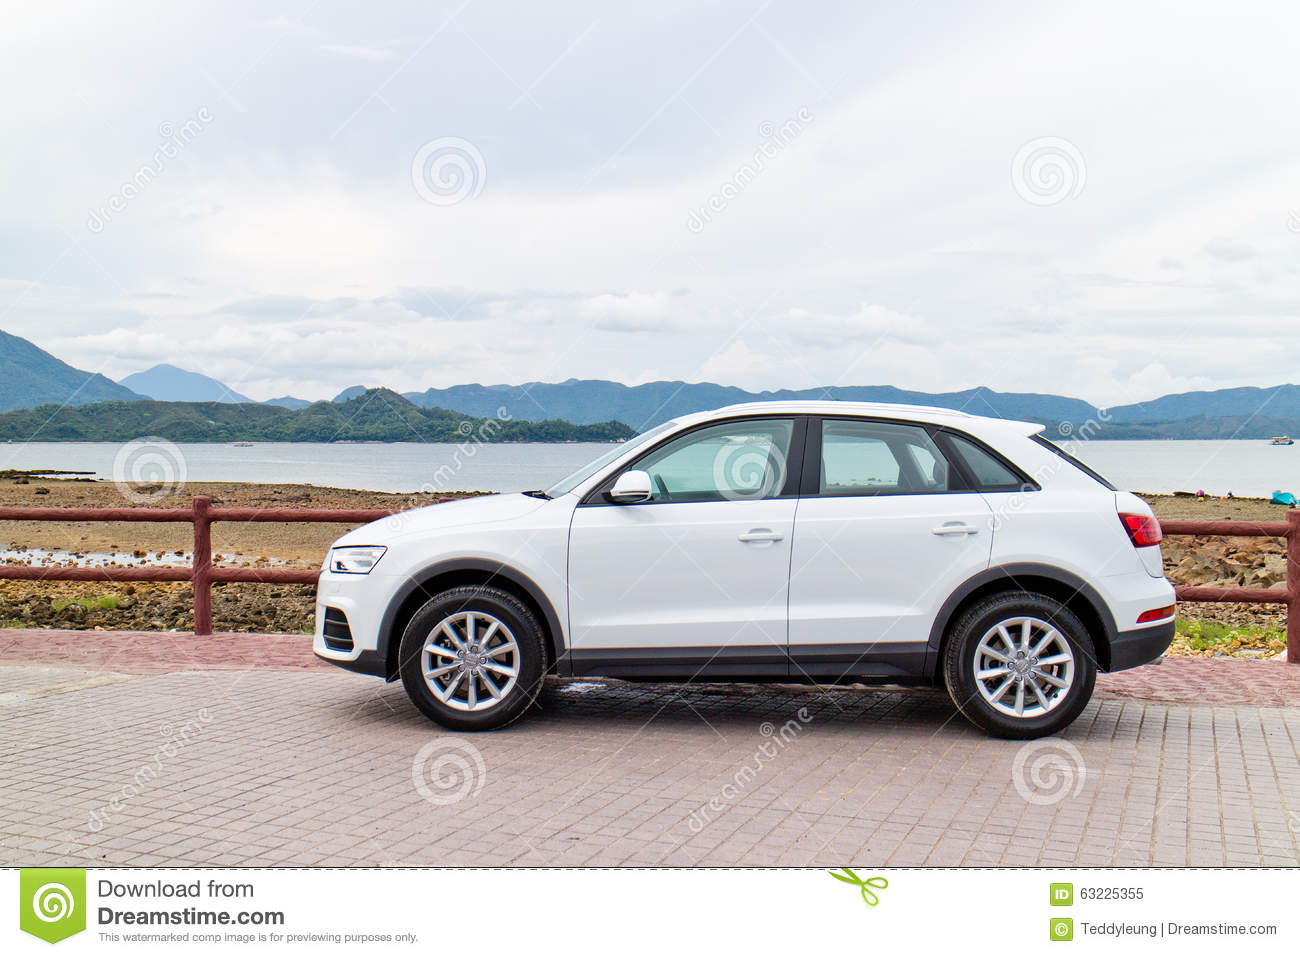 audi q3 facelift 2015 test drive day editorial image. Black Bedroom Furniture Sets. Home Design Ideas